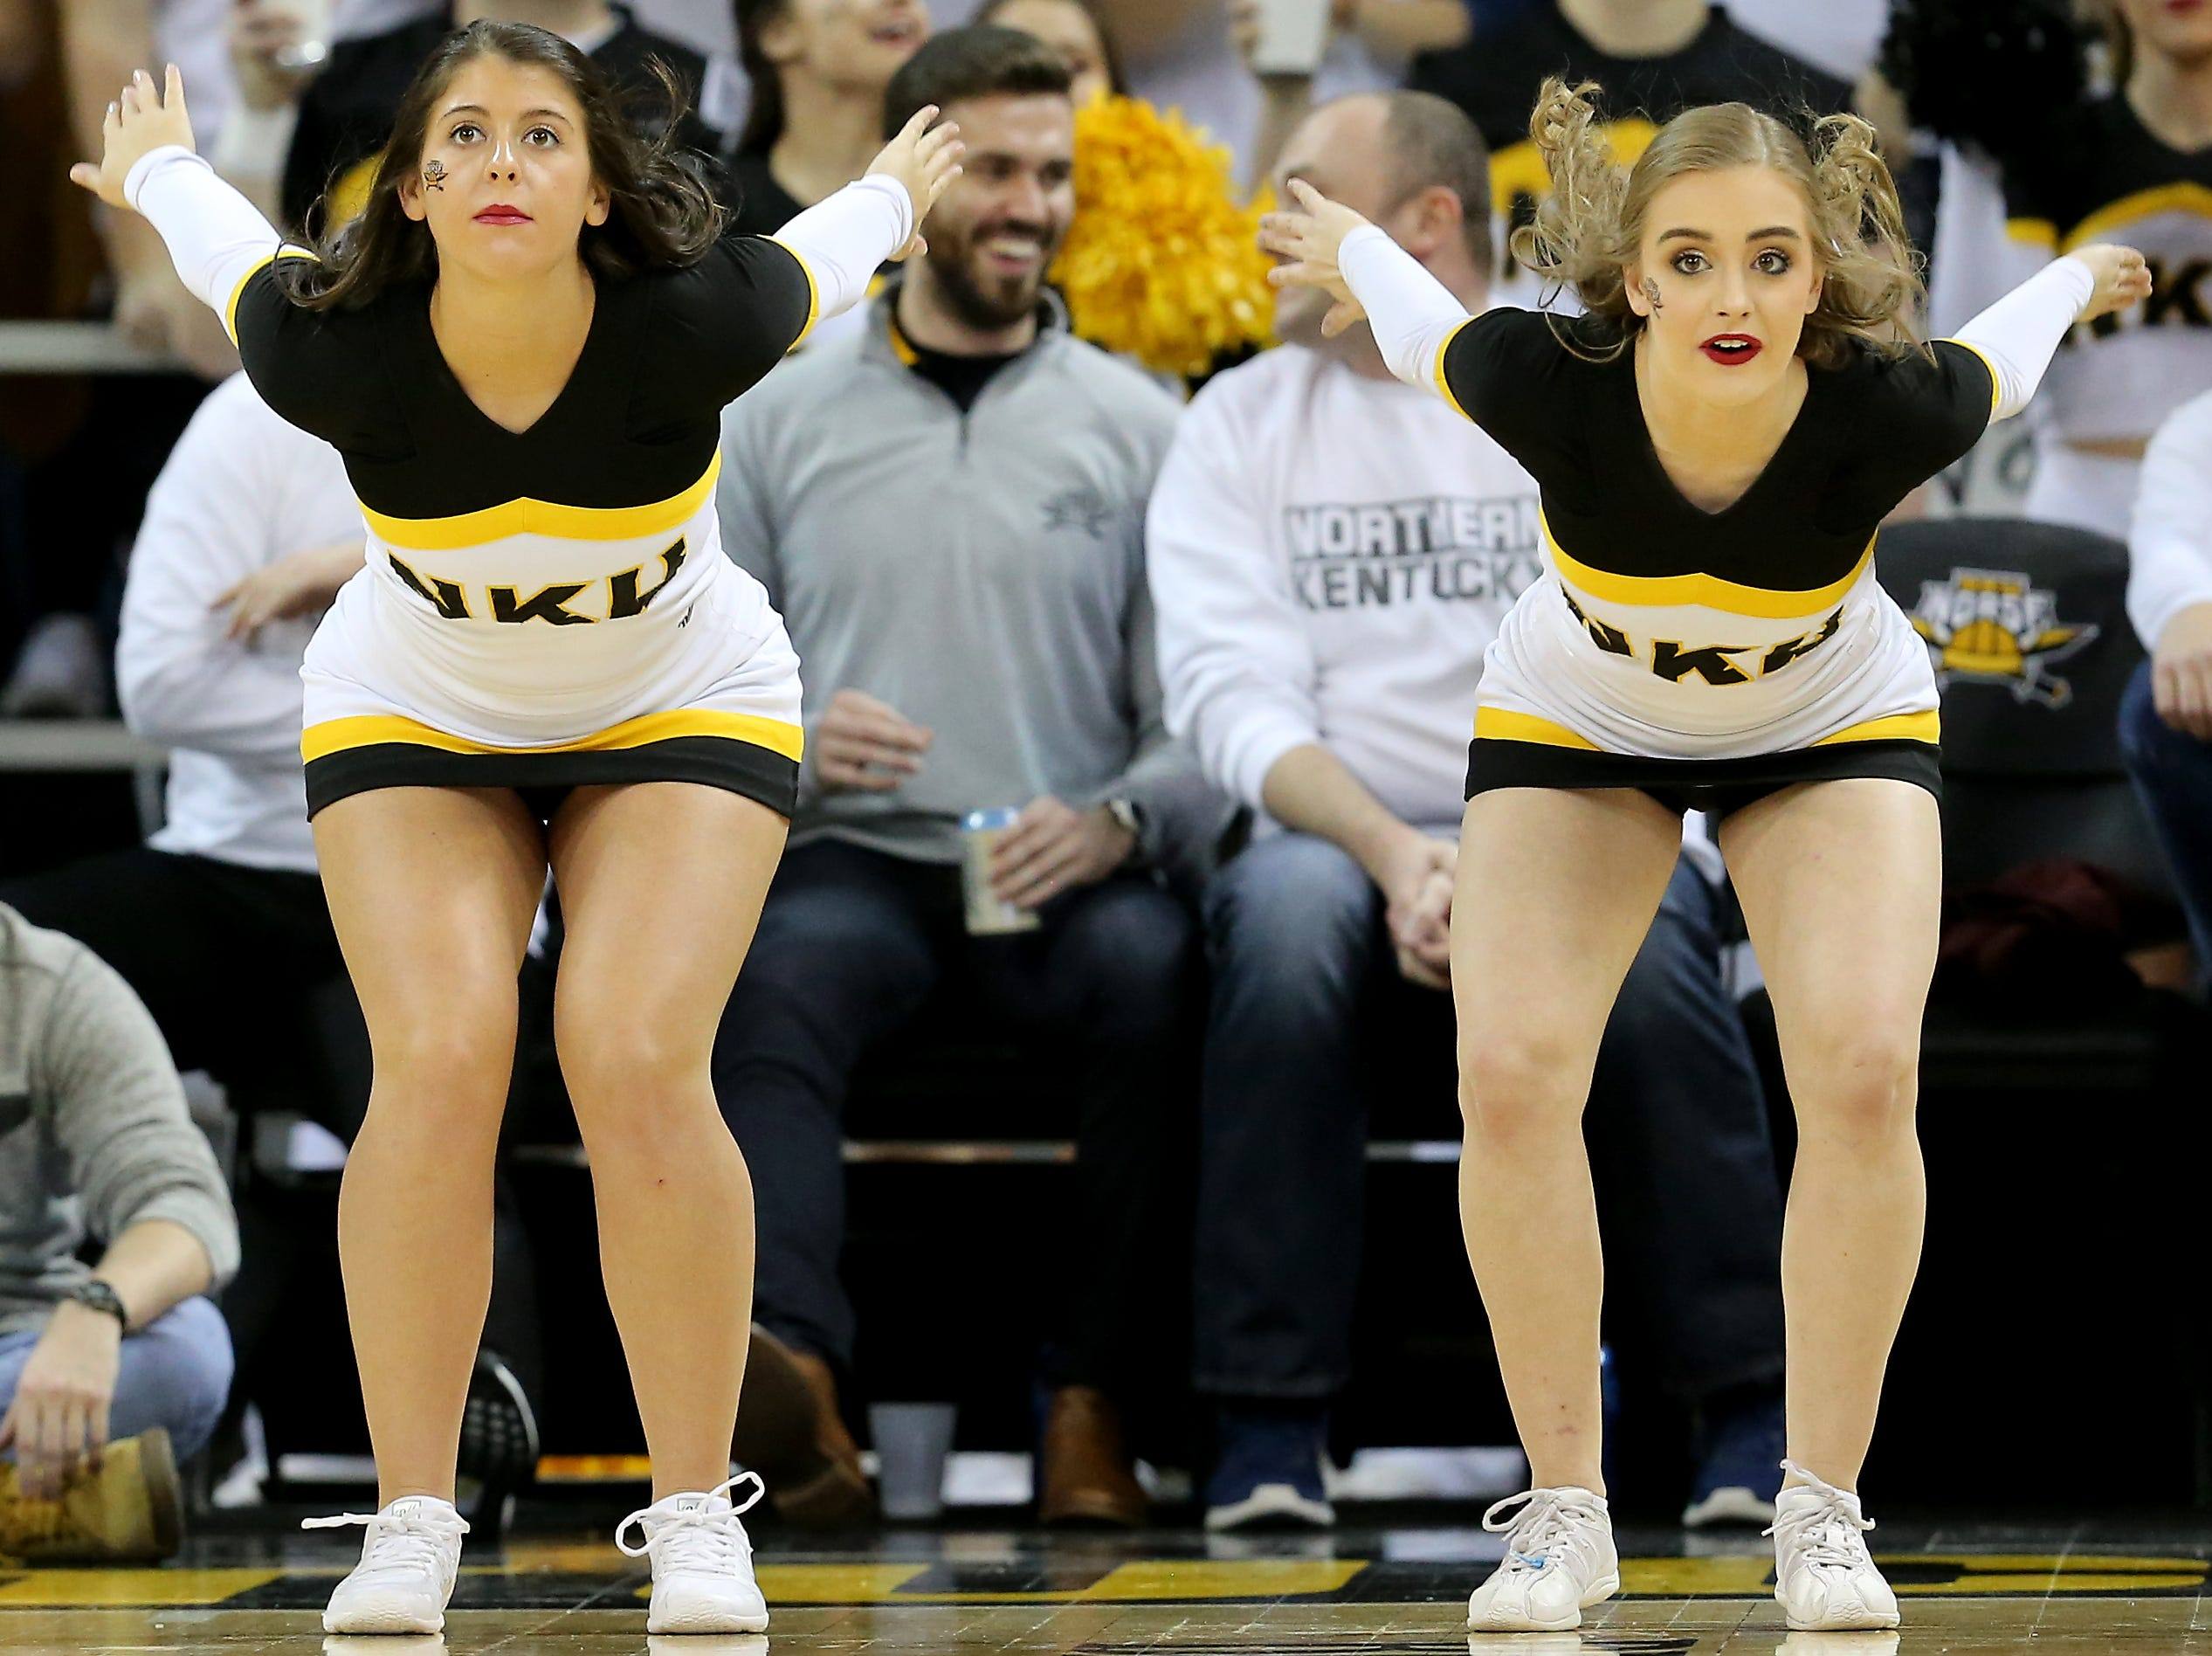 Two Northern Kentucky Norse flip during free throws in the second half of an NCAA basketball game, Friday, Jan. 11, 2019, at BB&T Arena in Highland Heights, Ky.